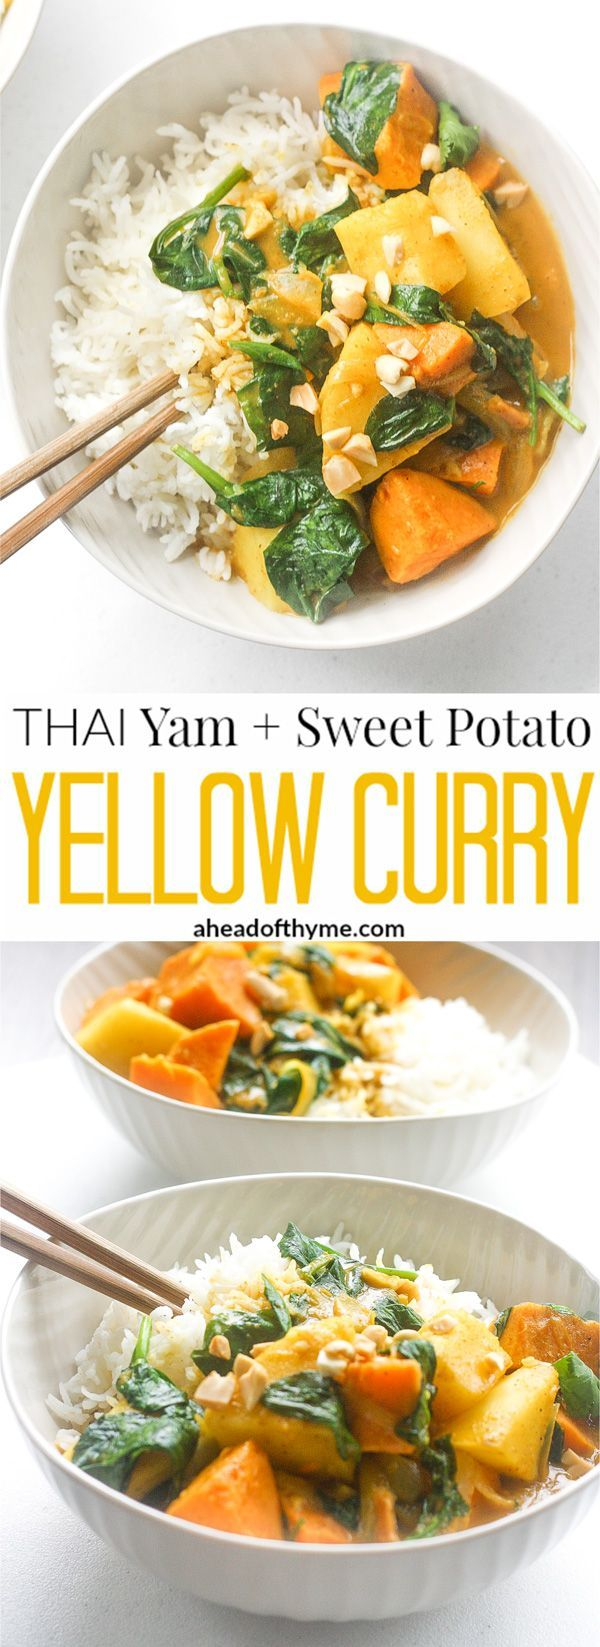 Thai Yam and Sweet Potato Yellow Creamy: Ready in under 30 minutes, try this delicious and creamy vegetarian Thai yam and sweet potato yellow curry tonight. | aheadofthyme.com